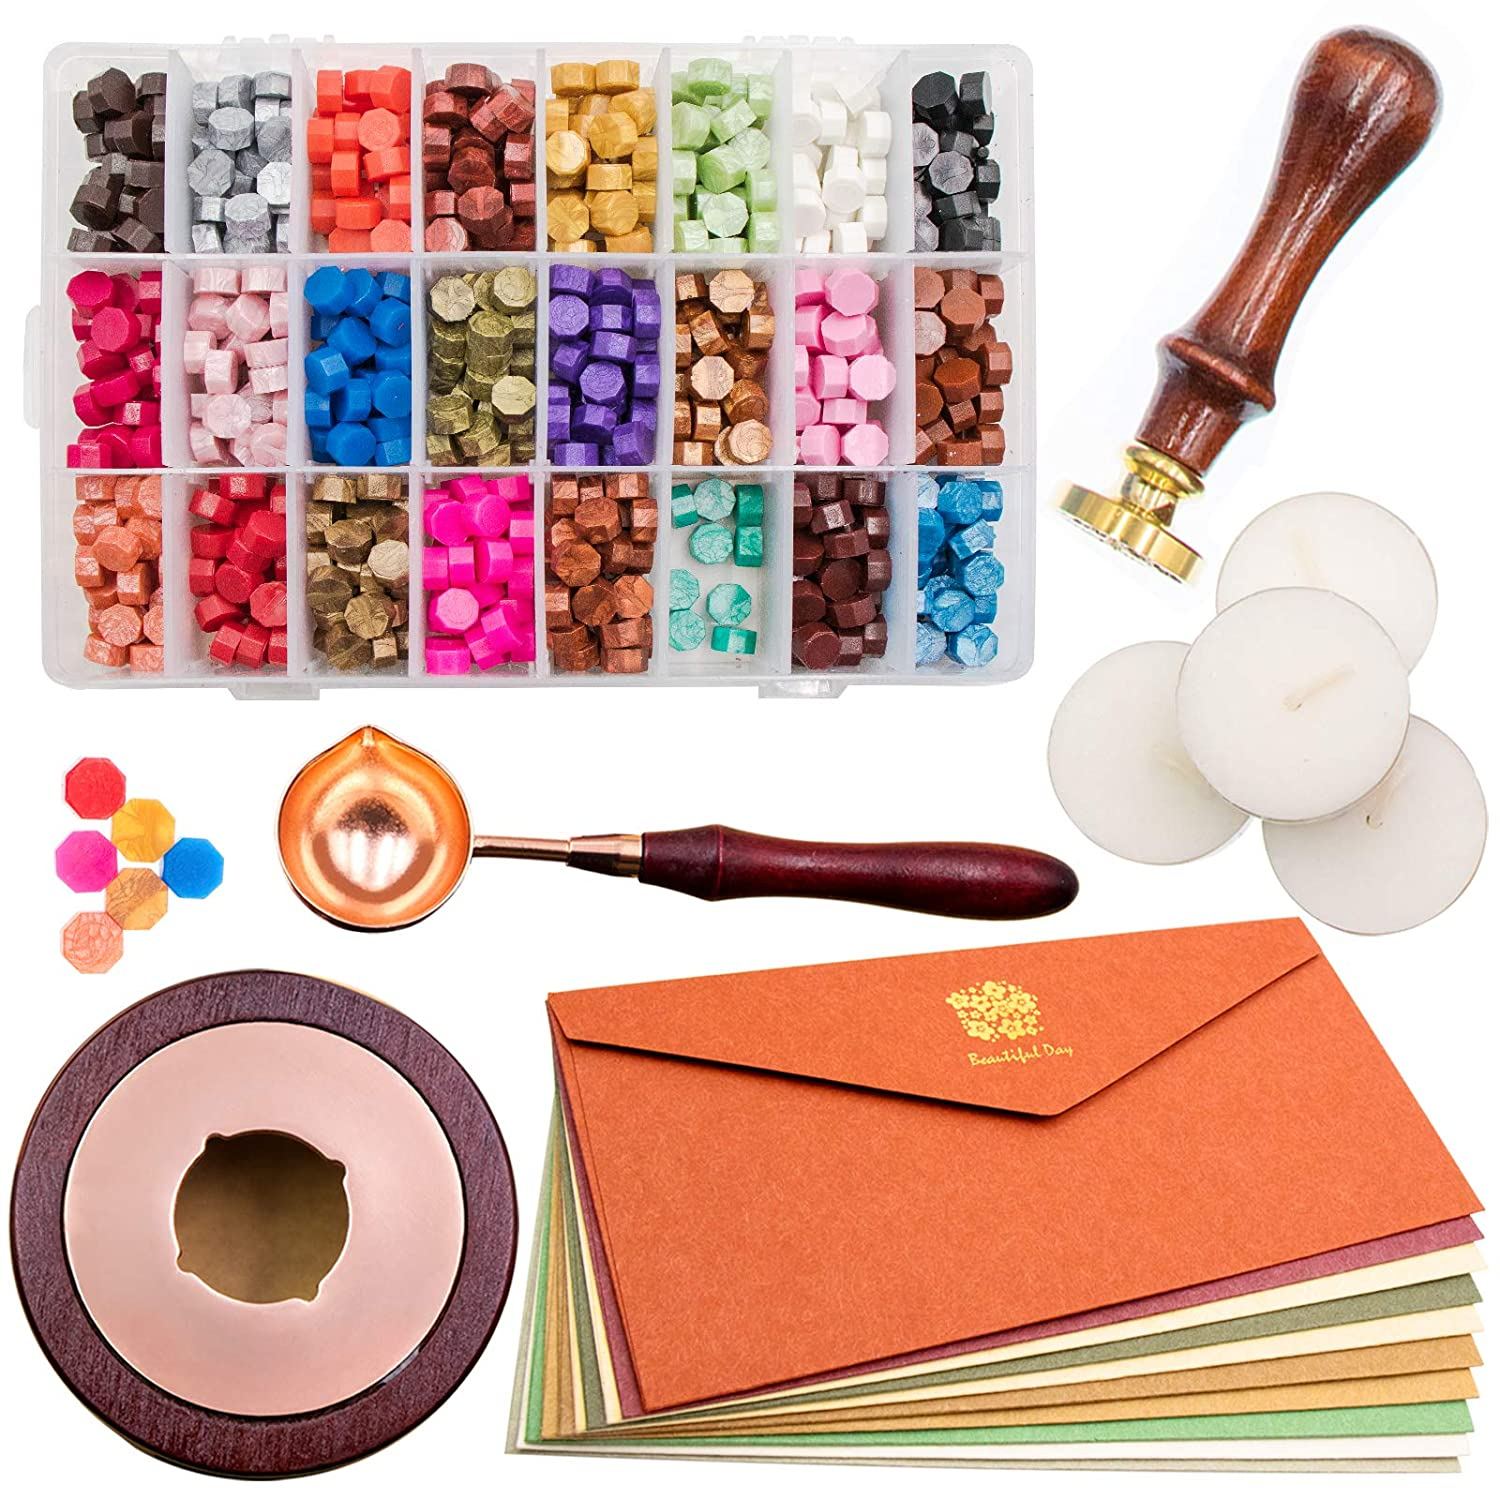 wax sealing beads 20pcs Bronze  wax beads for metal stamping wax stamps